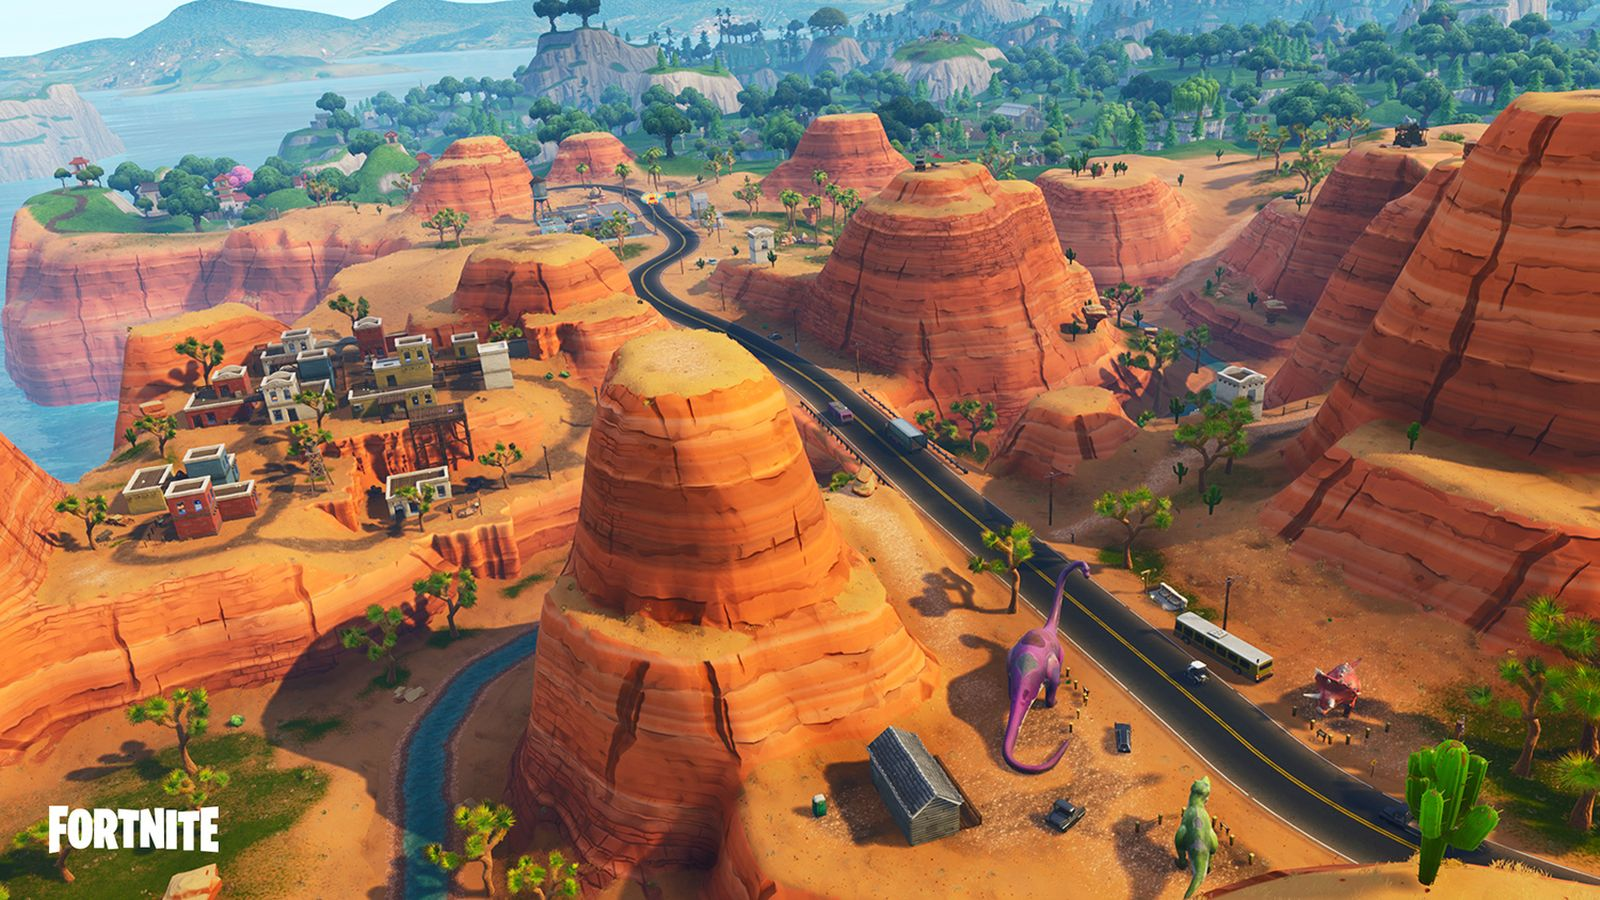 fortnite season 5 info map close up Epic Games